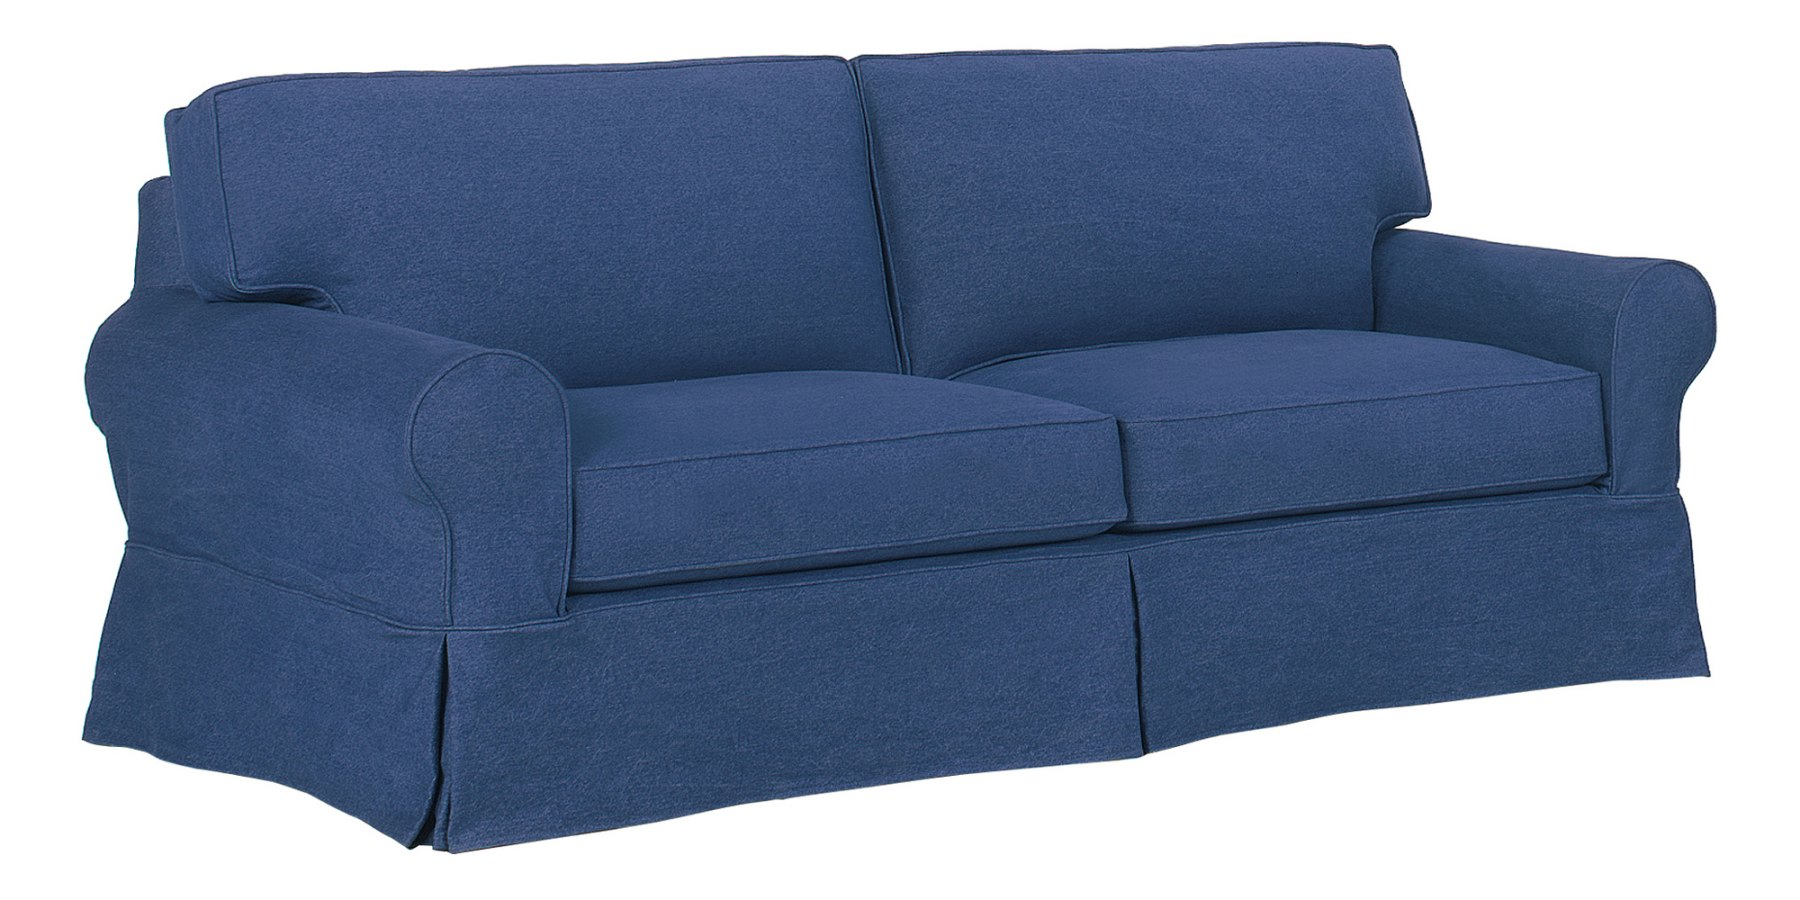 Denim Slipcovered Sofa With Chaise Ottoman Club Furniture